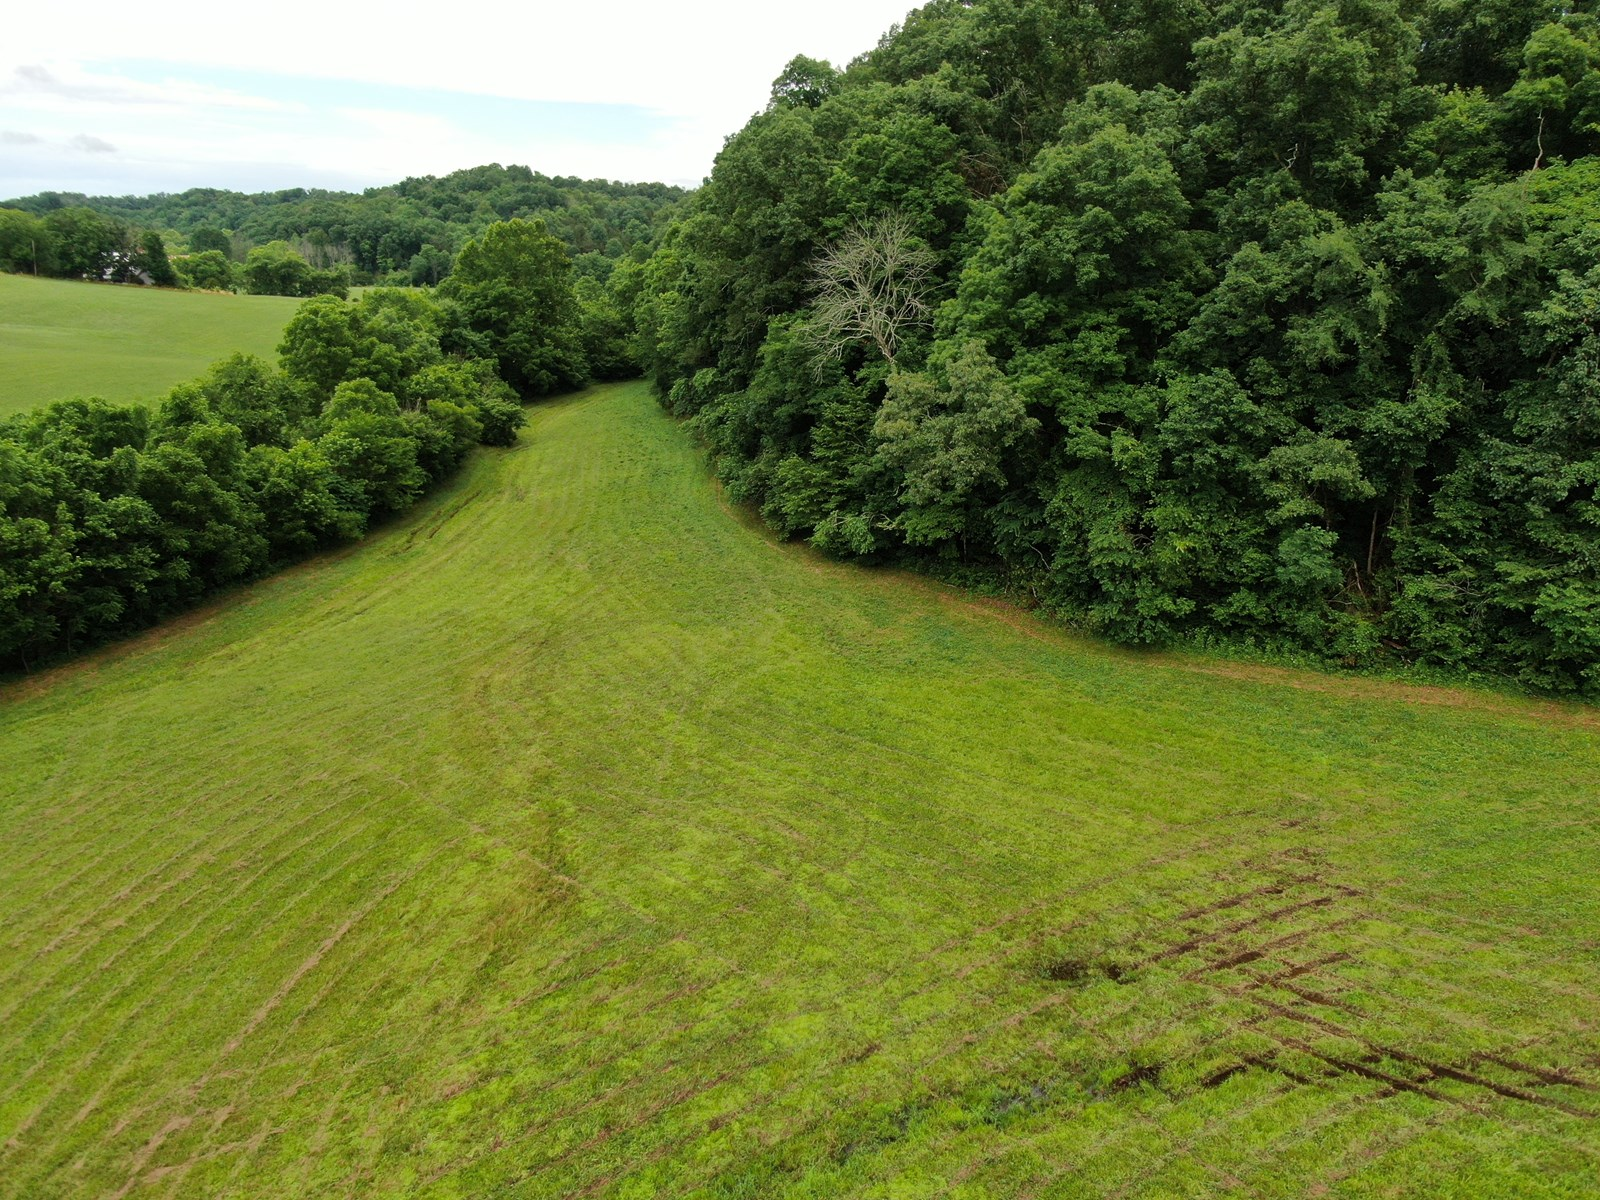 East Tennessee Unrestricted Land For Sale Greene County TN